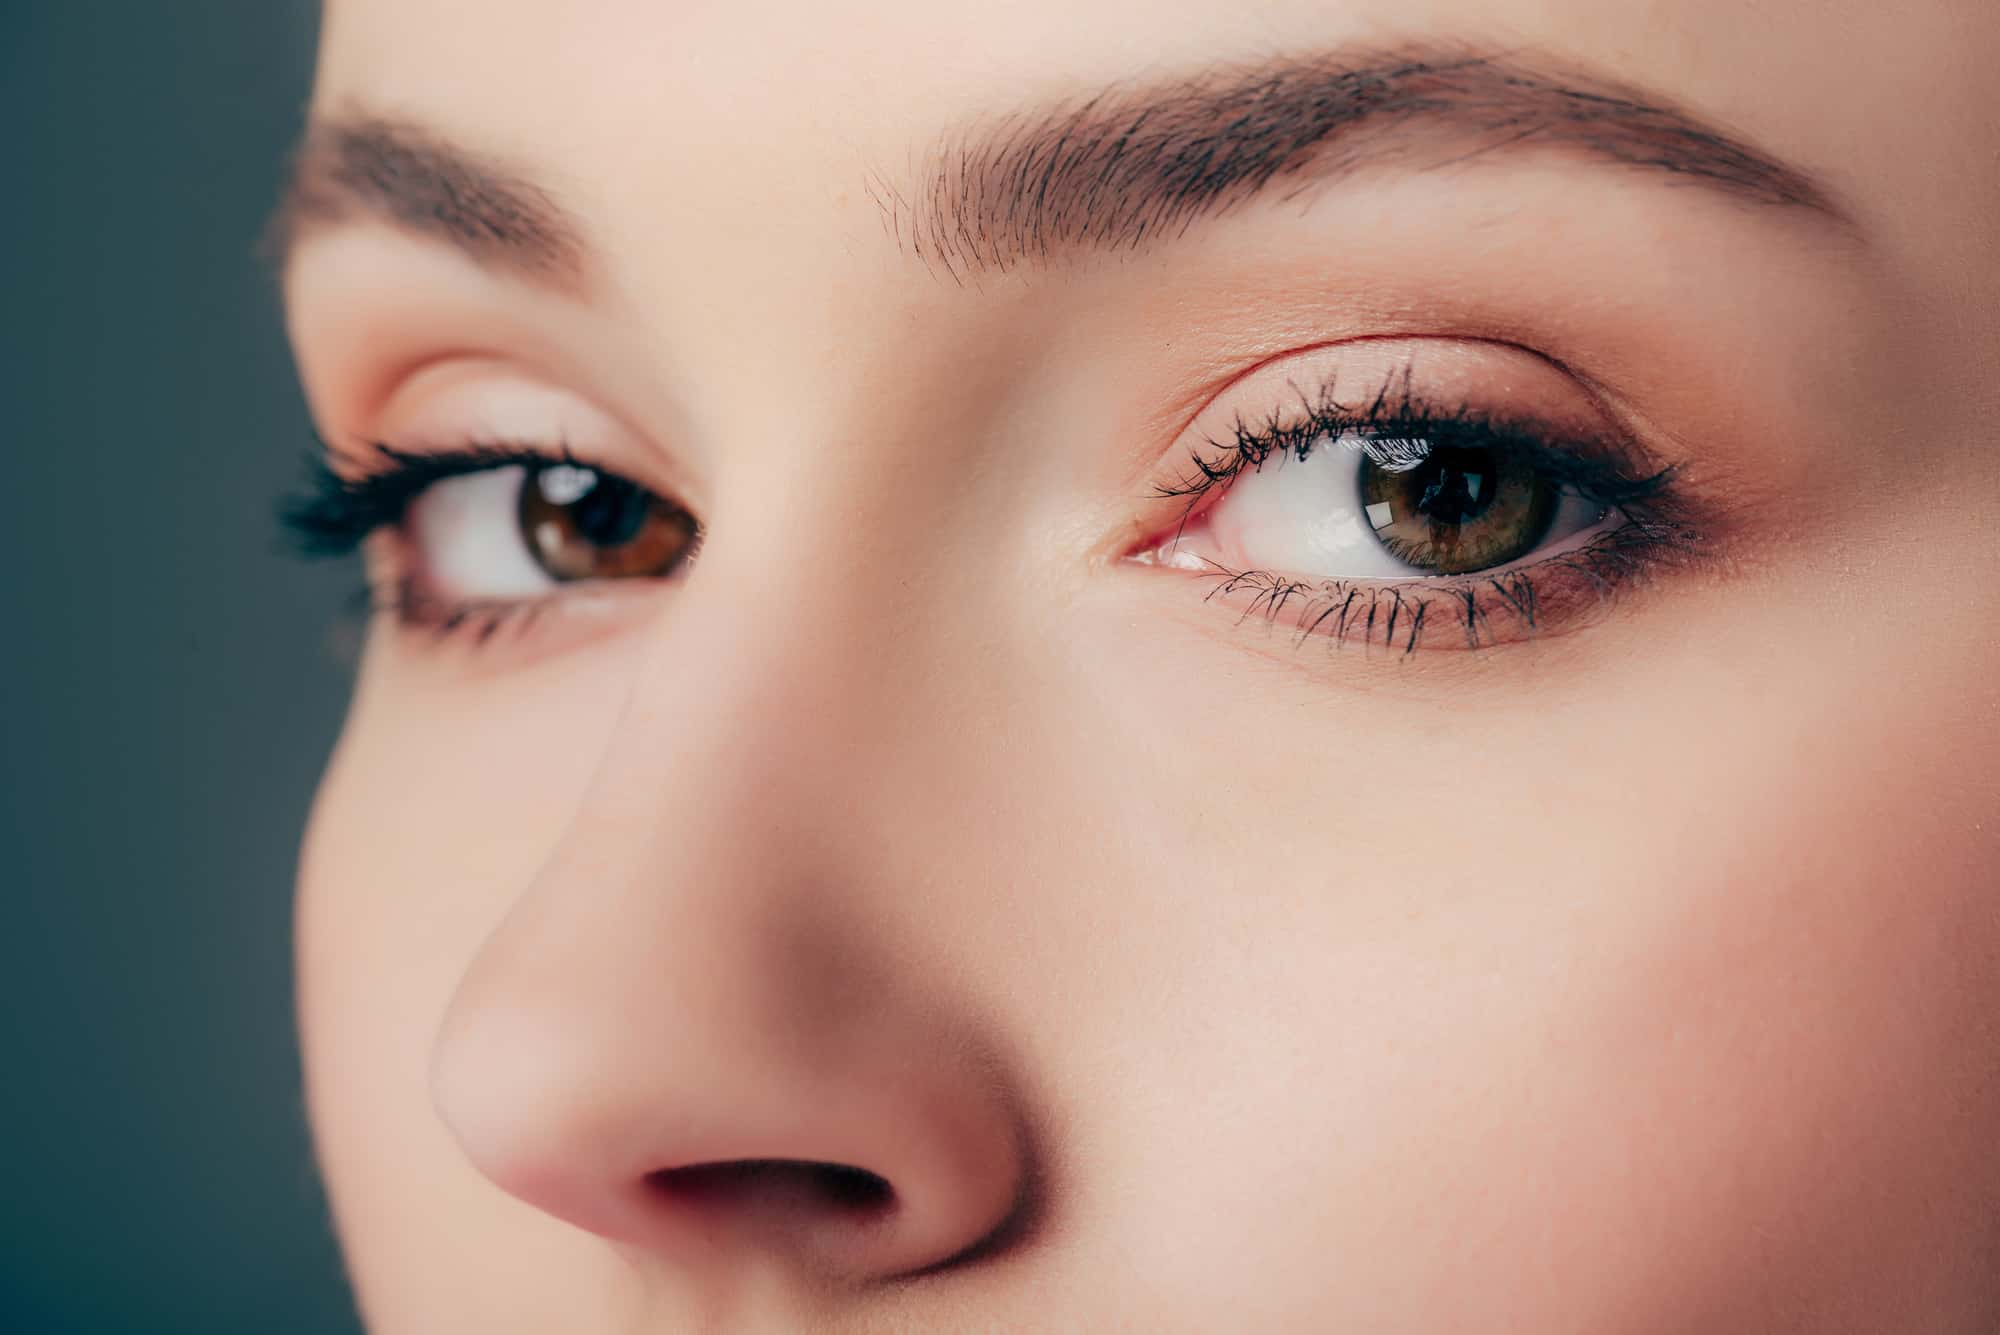 Best Foods To Improve Eyesight Vision Naturally